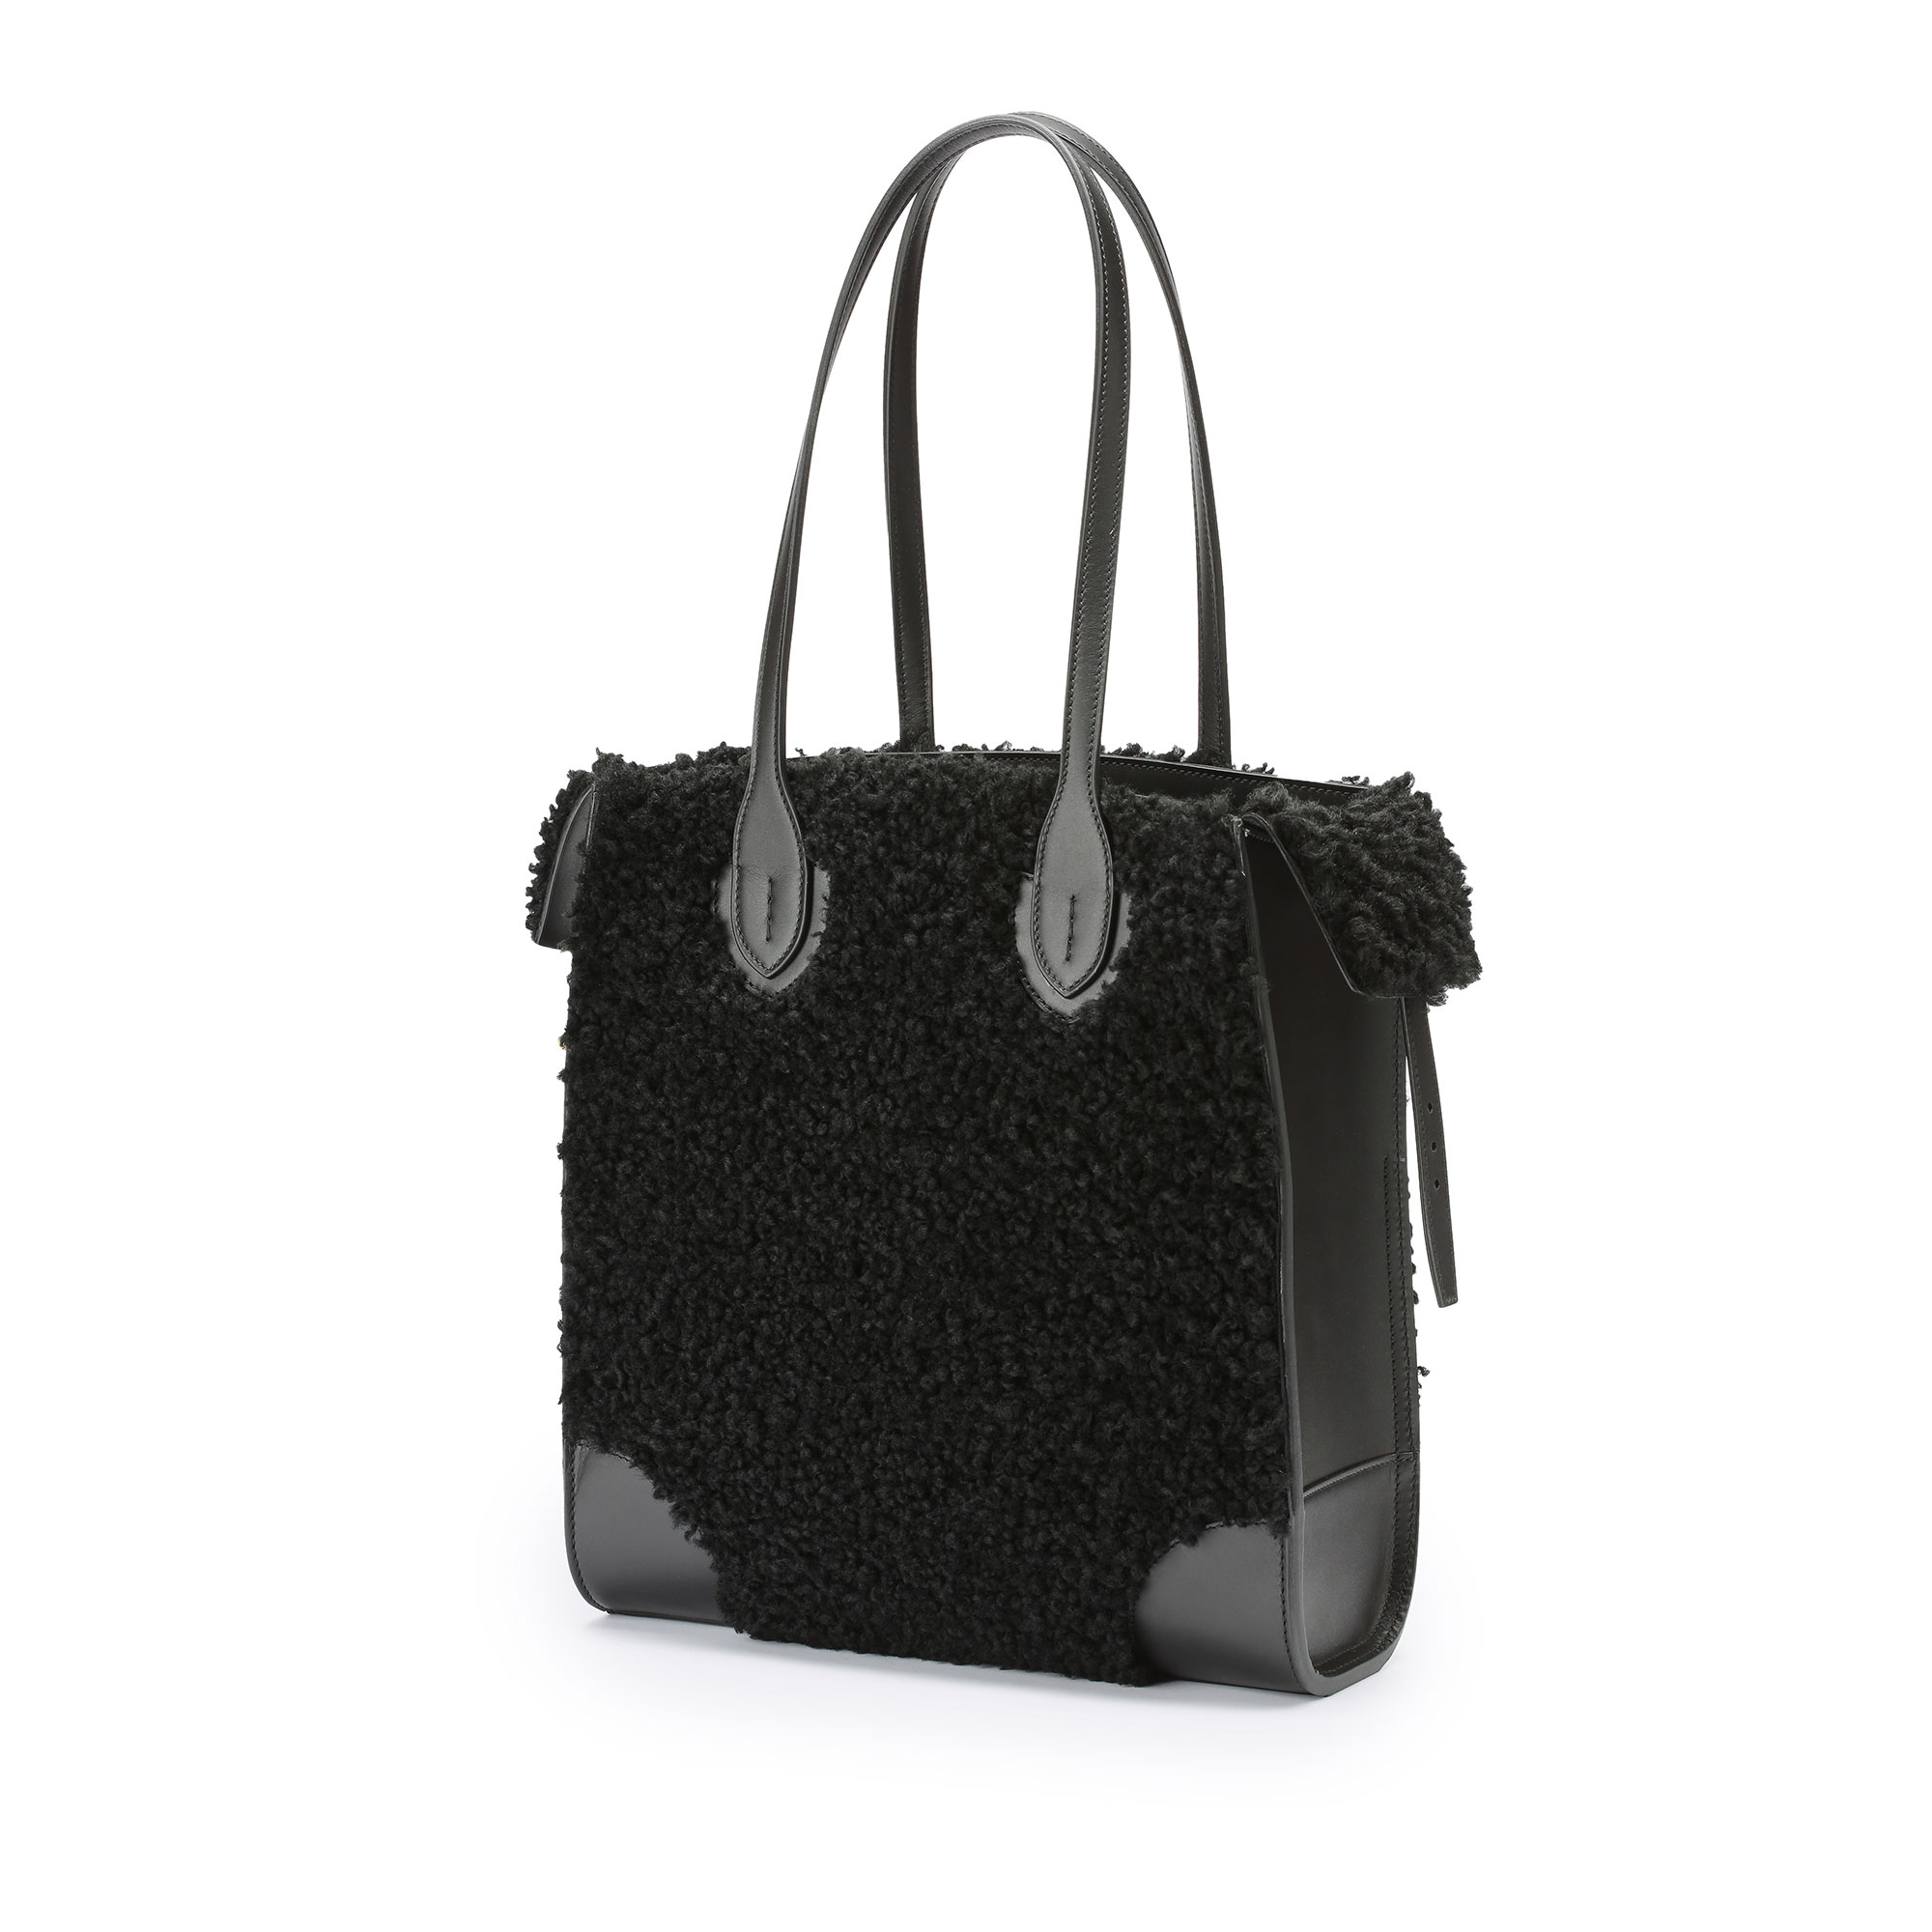 Darcy-Tote-black-shearling-bag-Bertoni-1949_02